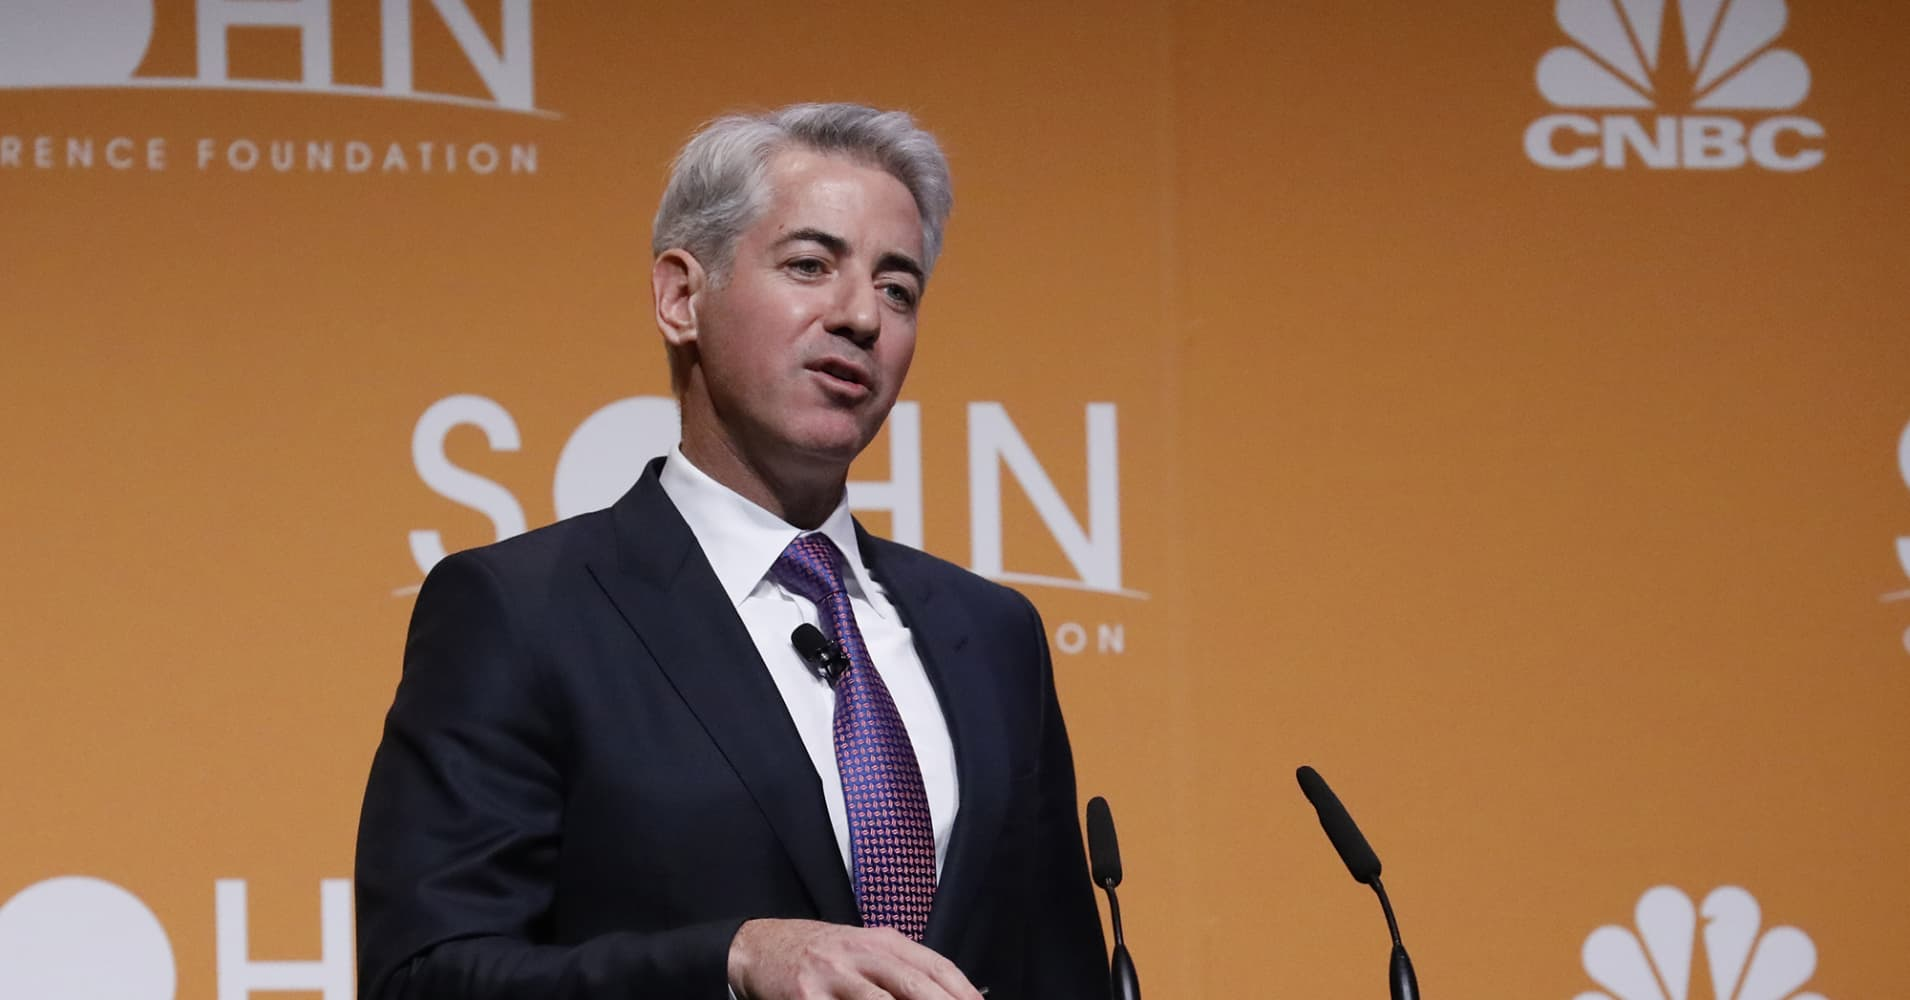 Bill Ackman is bragging about a mystery investment doing really well as hedge fund trails market